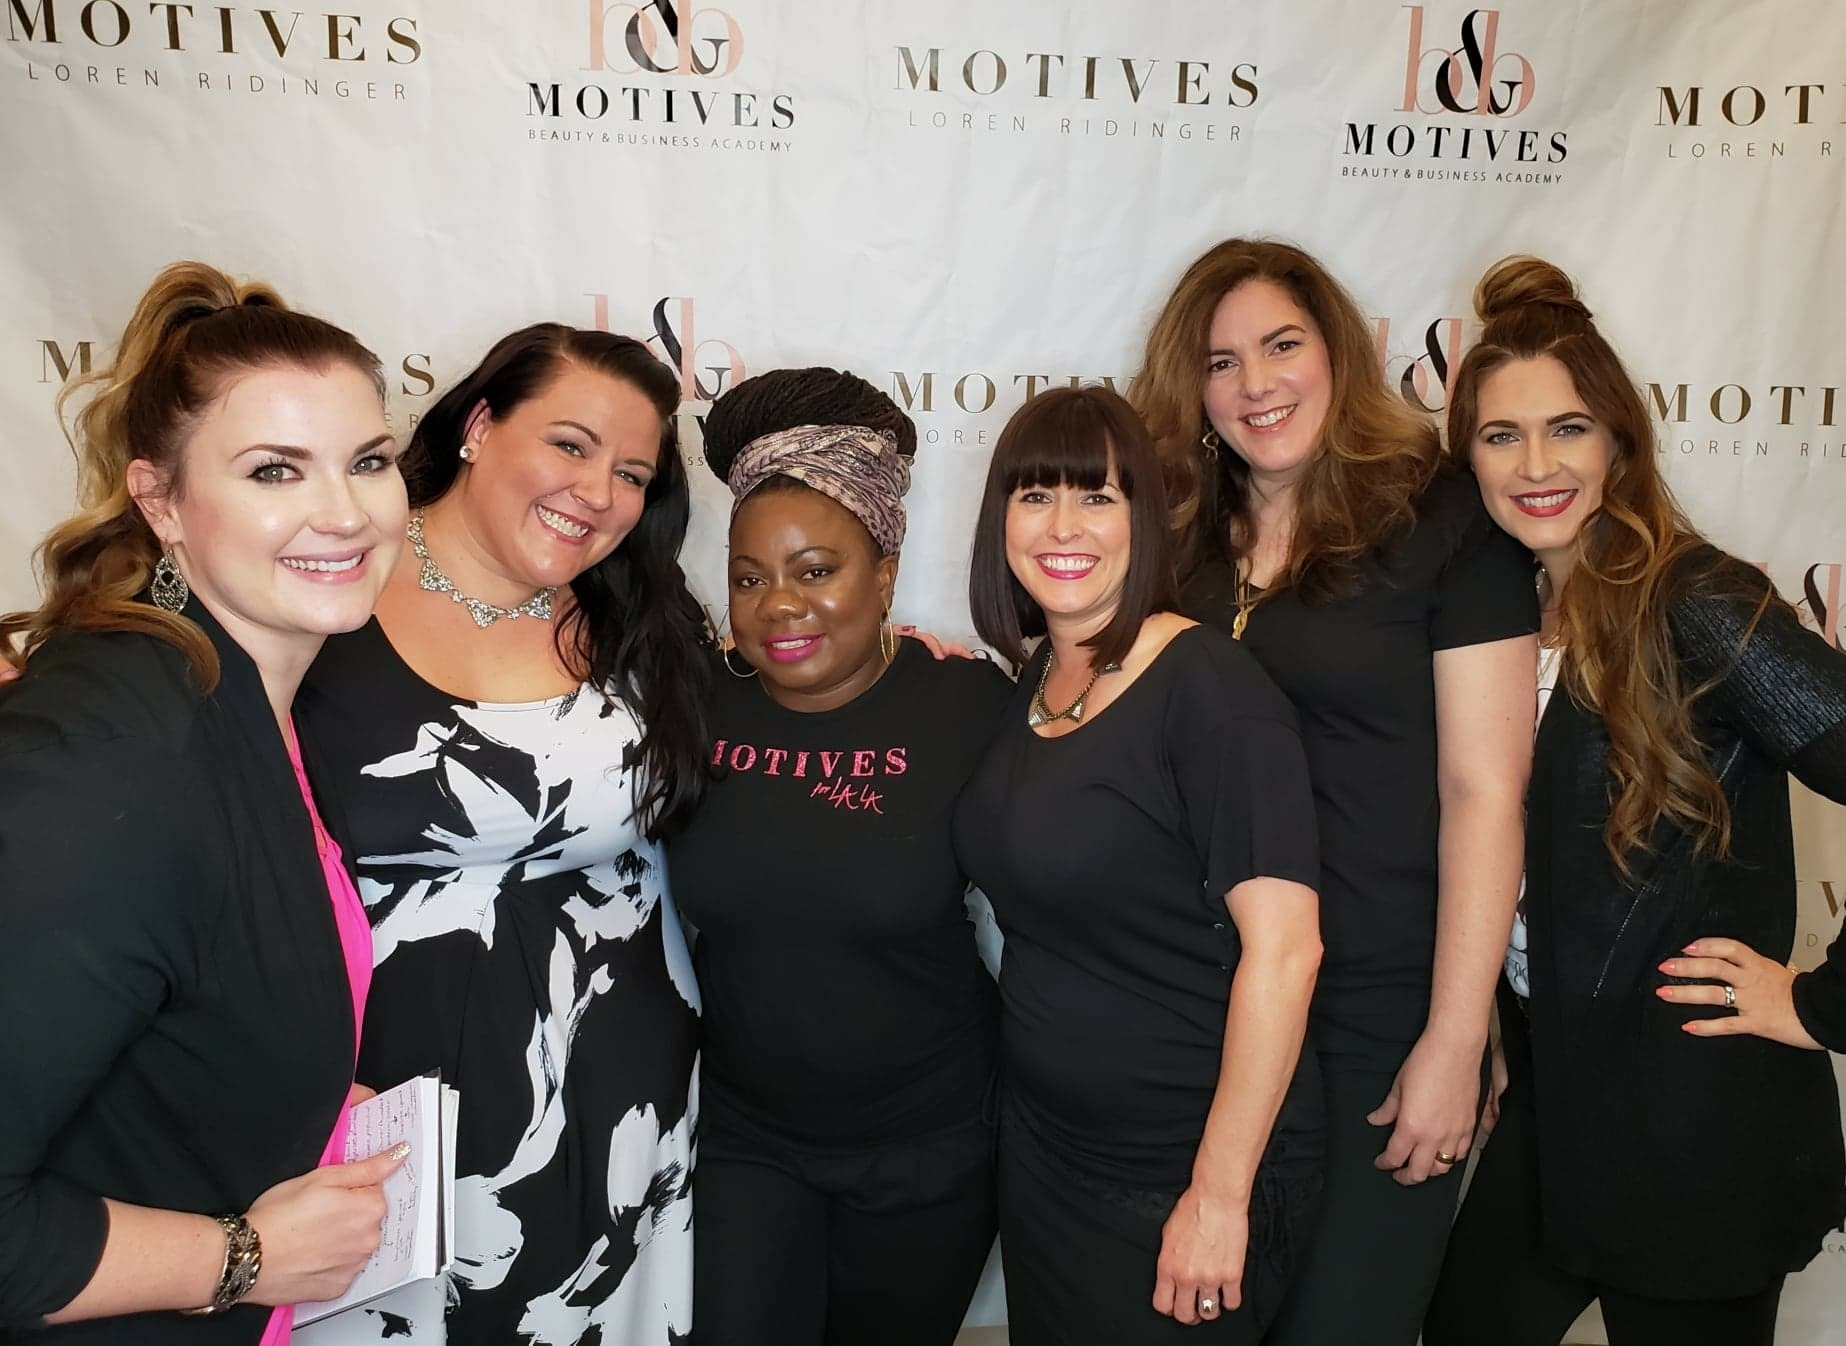 Richmond Motives Beauty & Business Academy